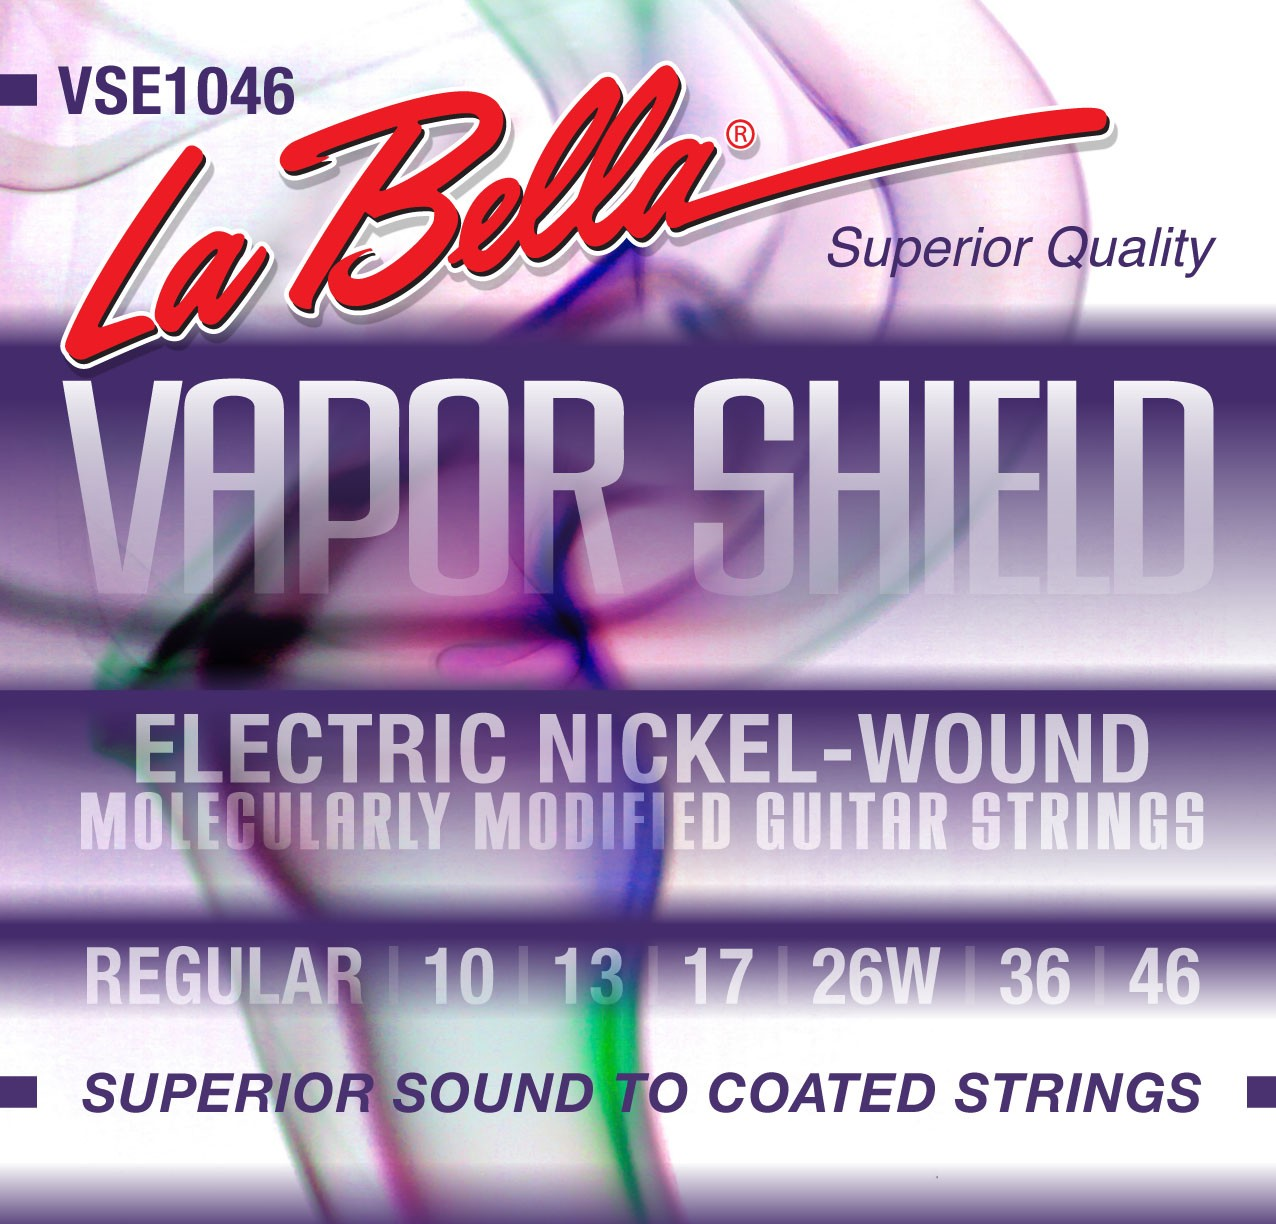 La Bella Electric Guitar Strings - Vapor Shield Series